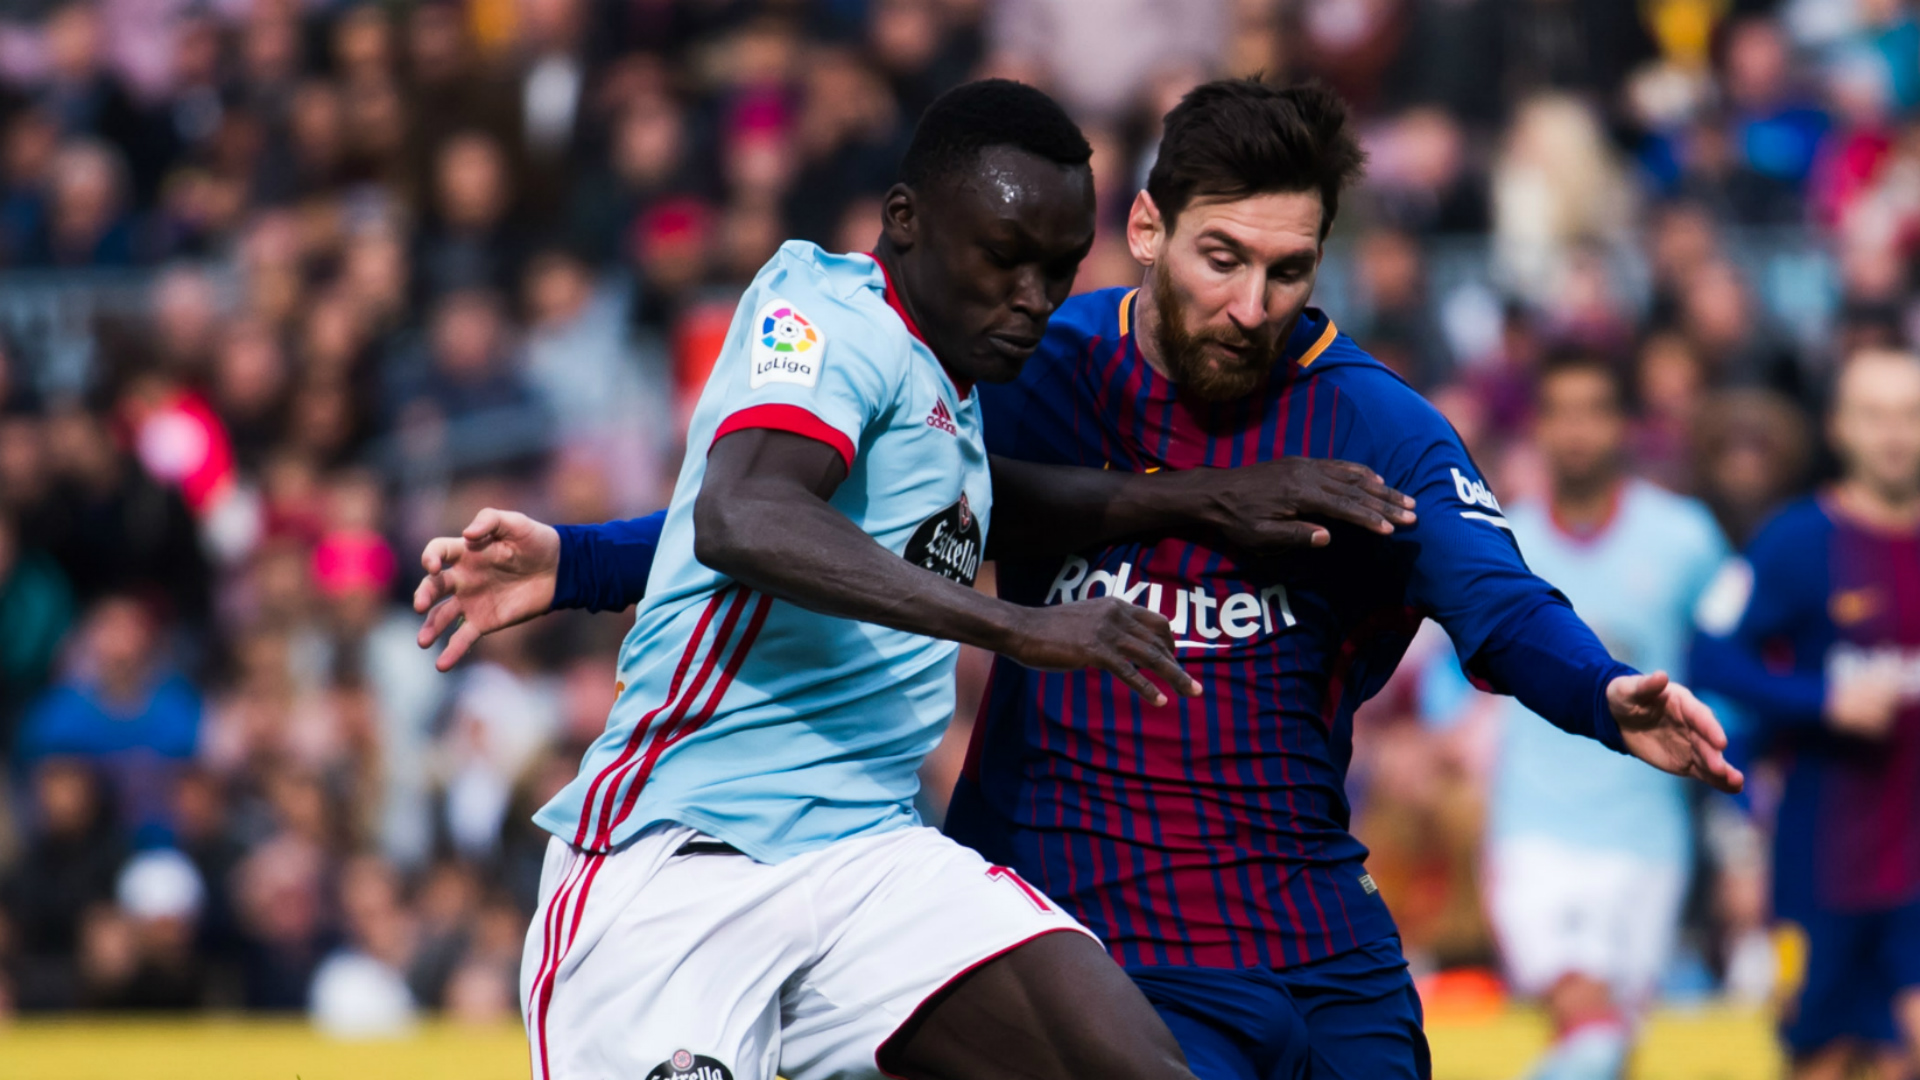 Messi stars as Barca thrash Celta to reach Copa del Rey Q/finals